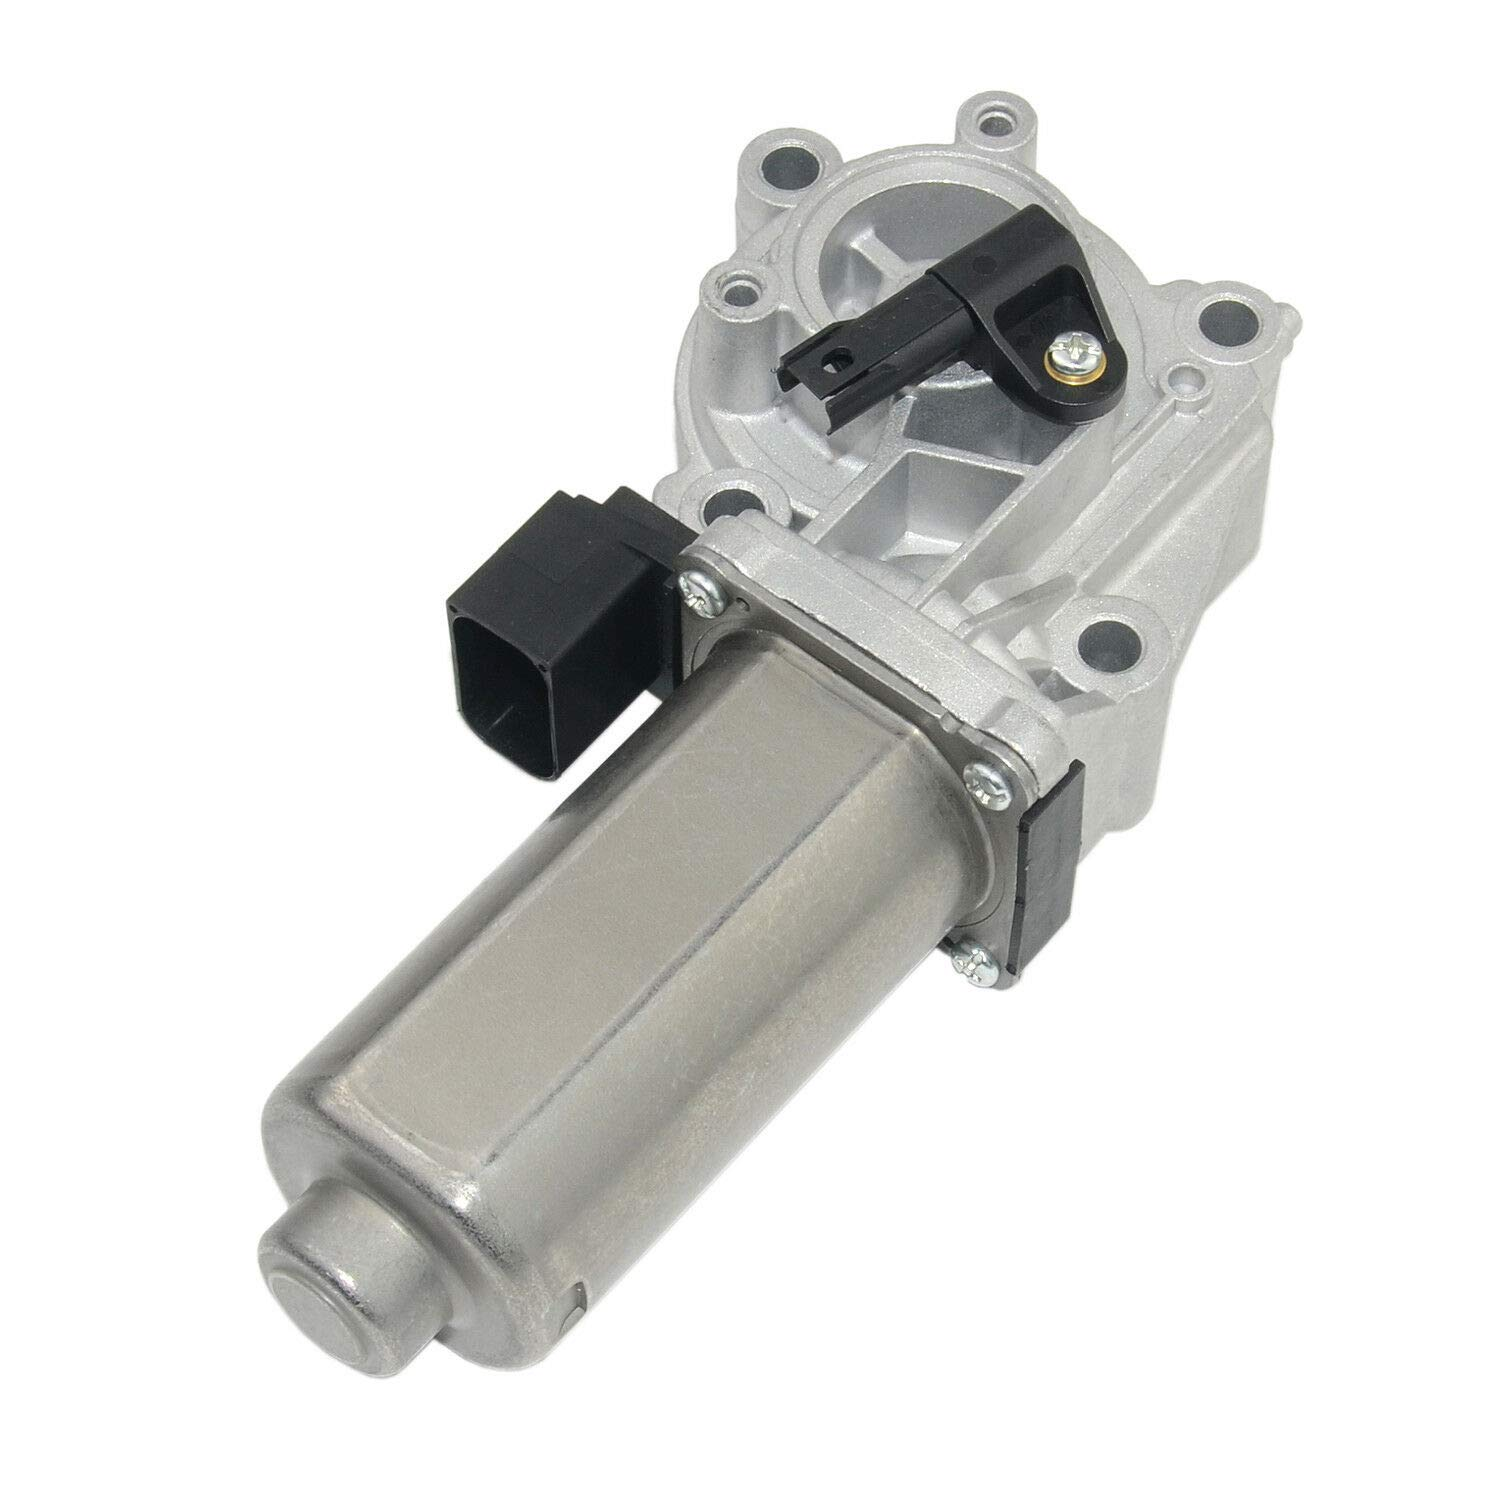 Transfer Case Shift Actuator Shift Motor For BMW X3 X5 27107566296 27107541782 27103455136 Range Rover LR3 LR4 IGH500040 (149A)